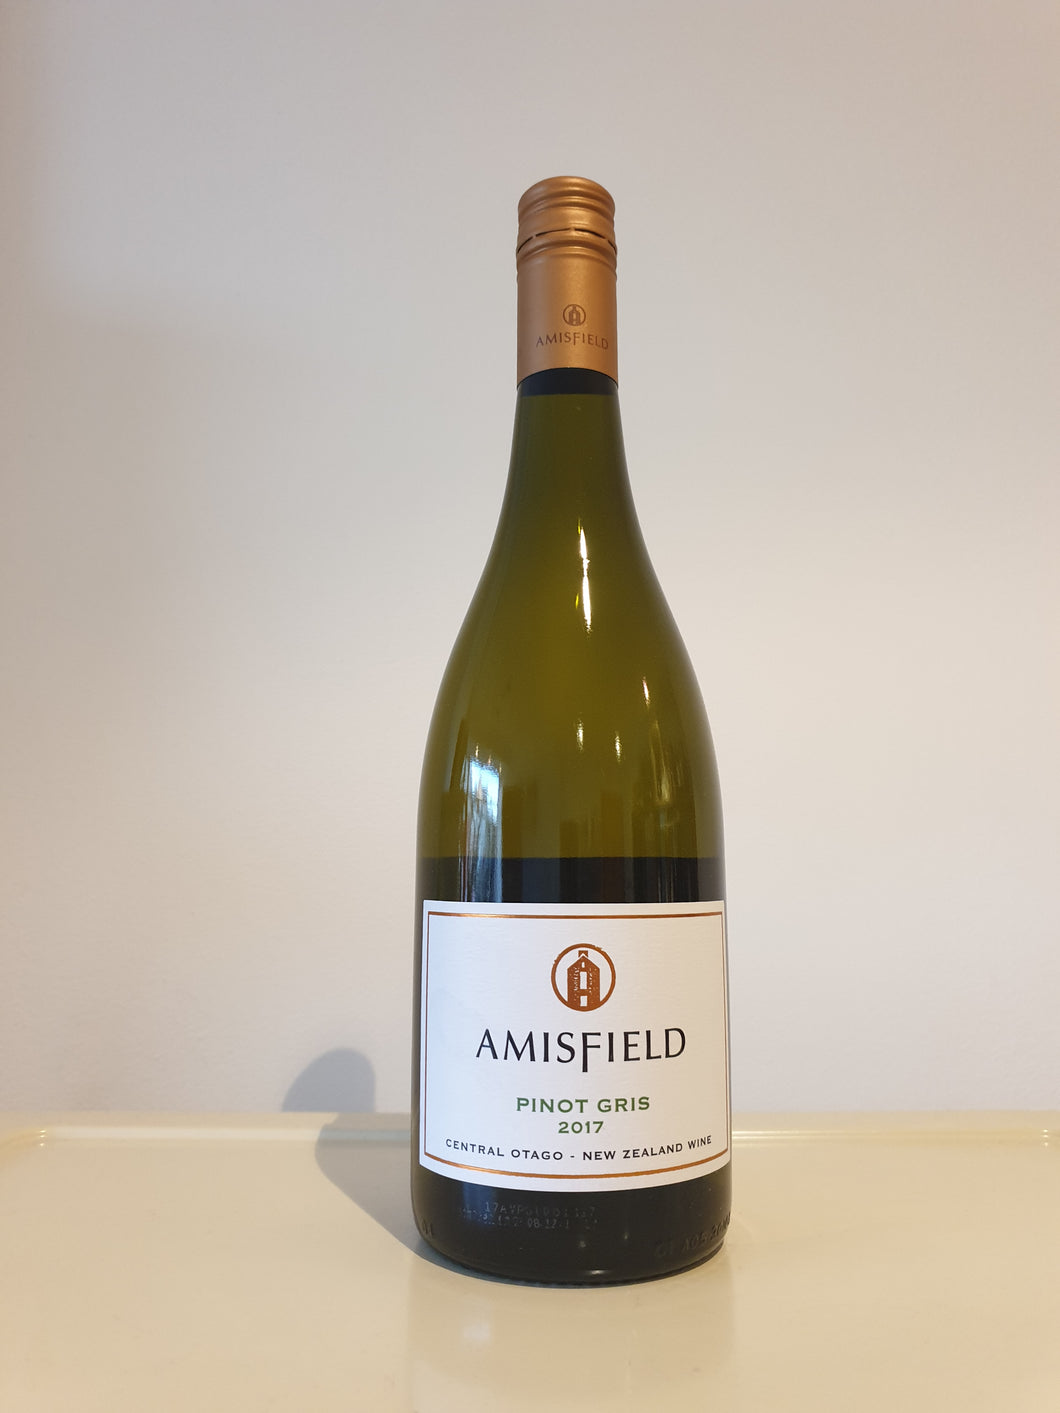 Amisfield Pinot Gris 2017 75cl